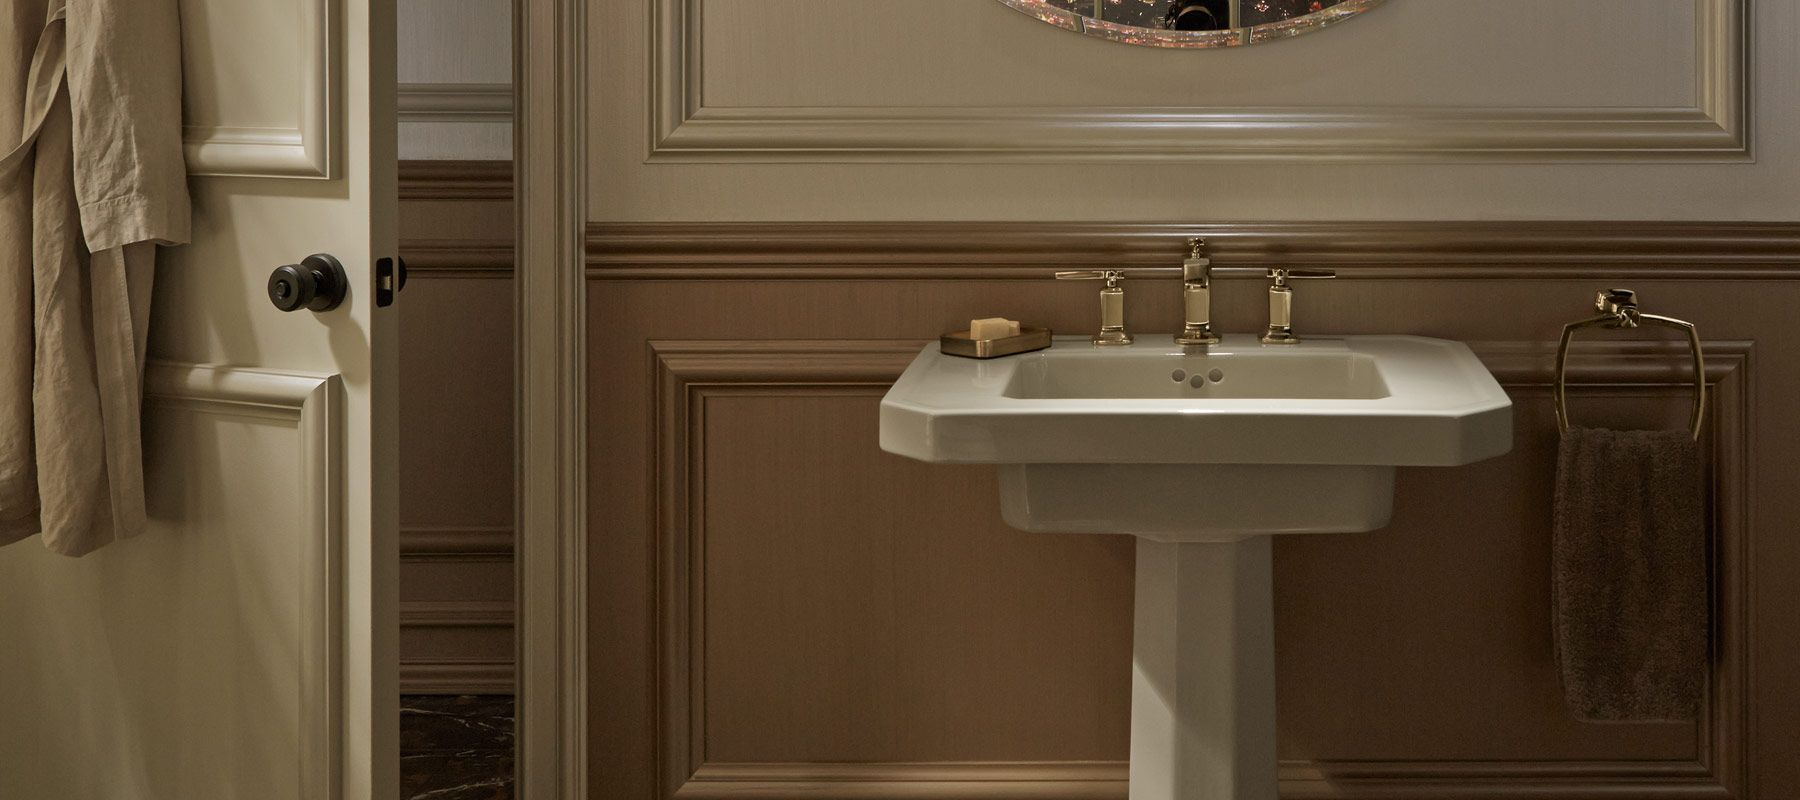 Small wall mounted bathroom sinks - Gleaming Gold Details